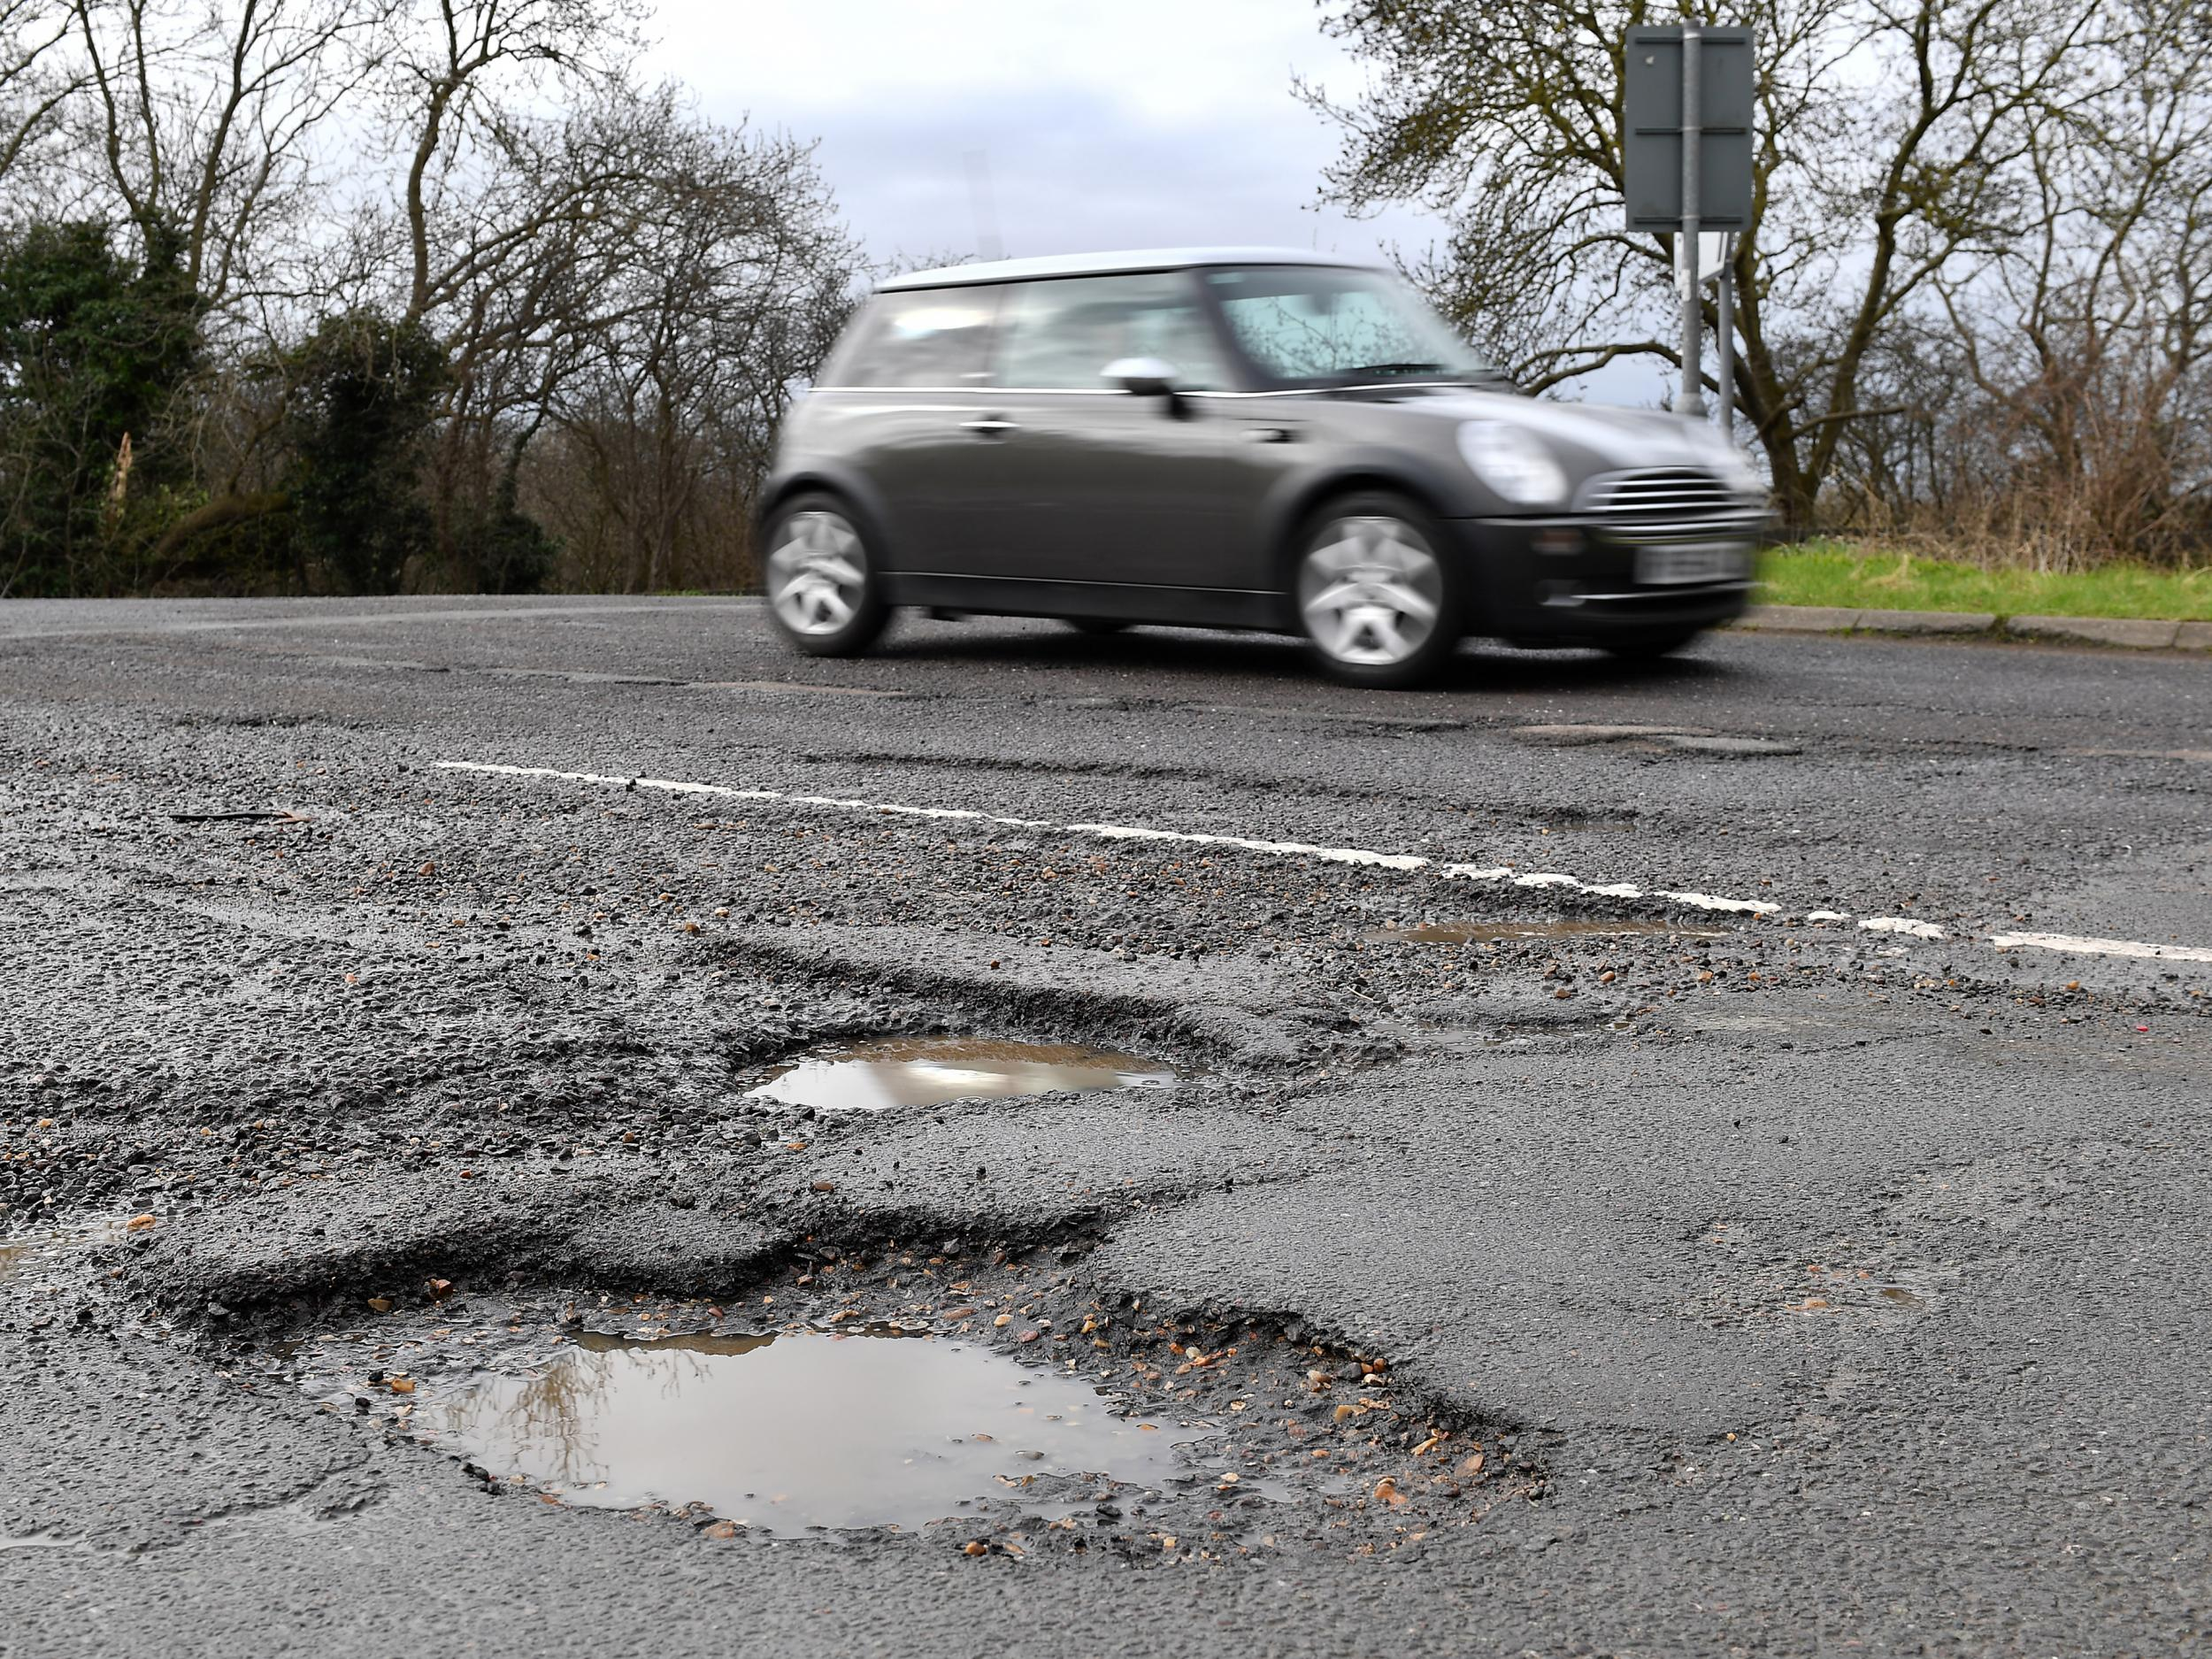 Budget will include £2.5bn for fixing potholes